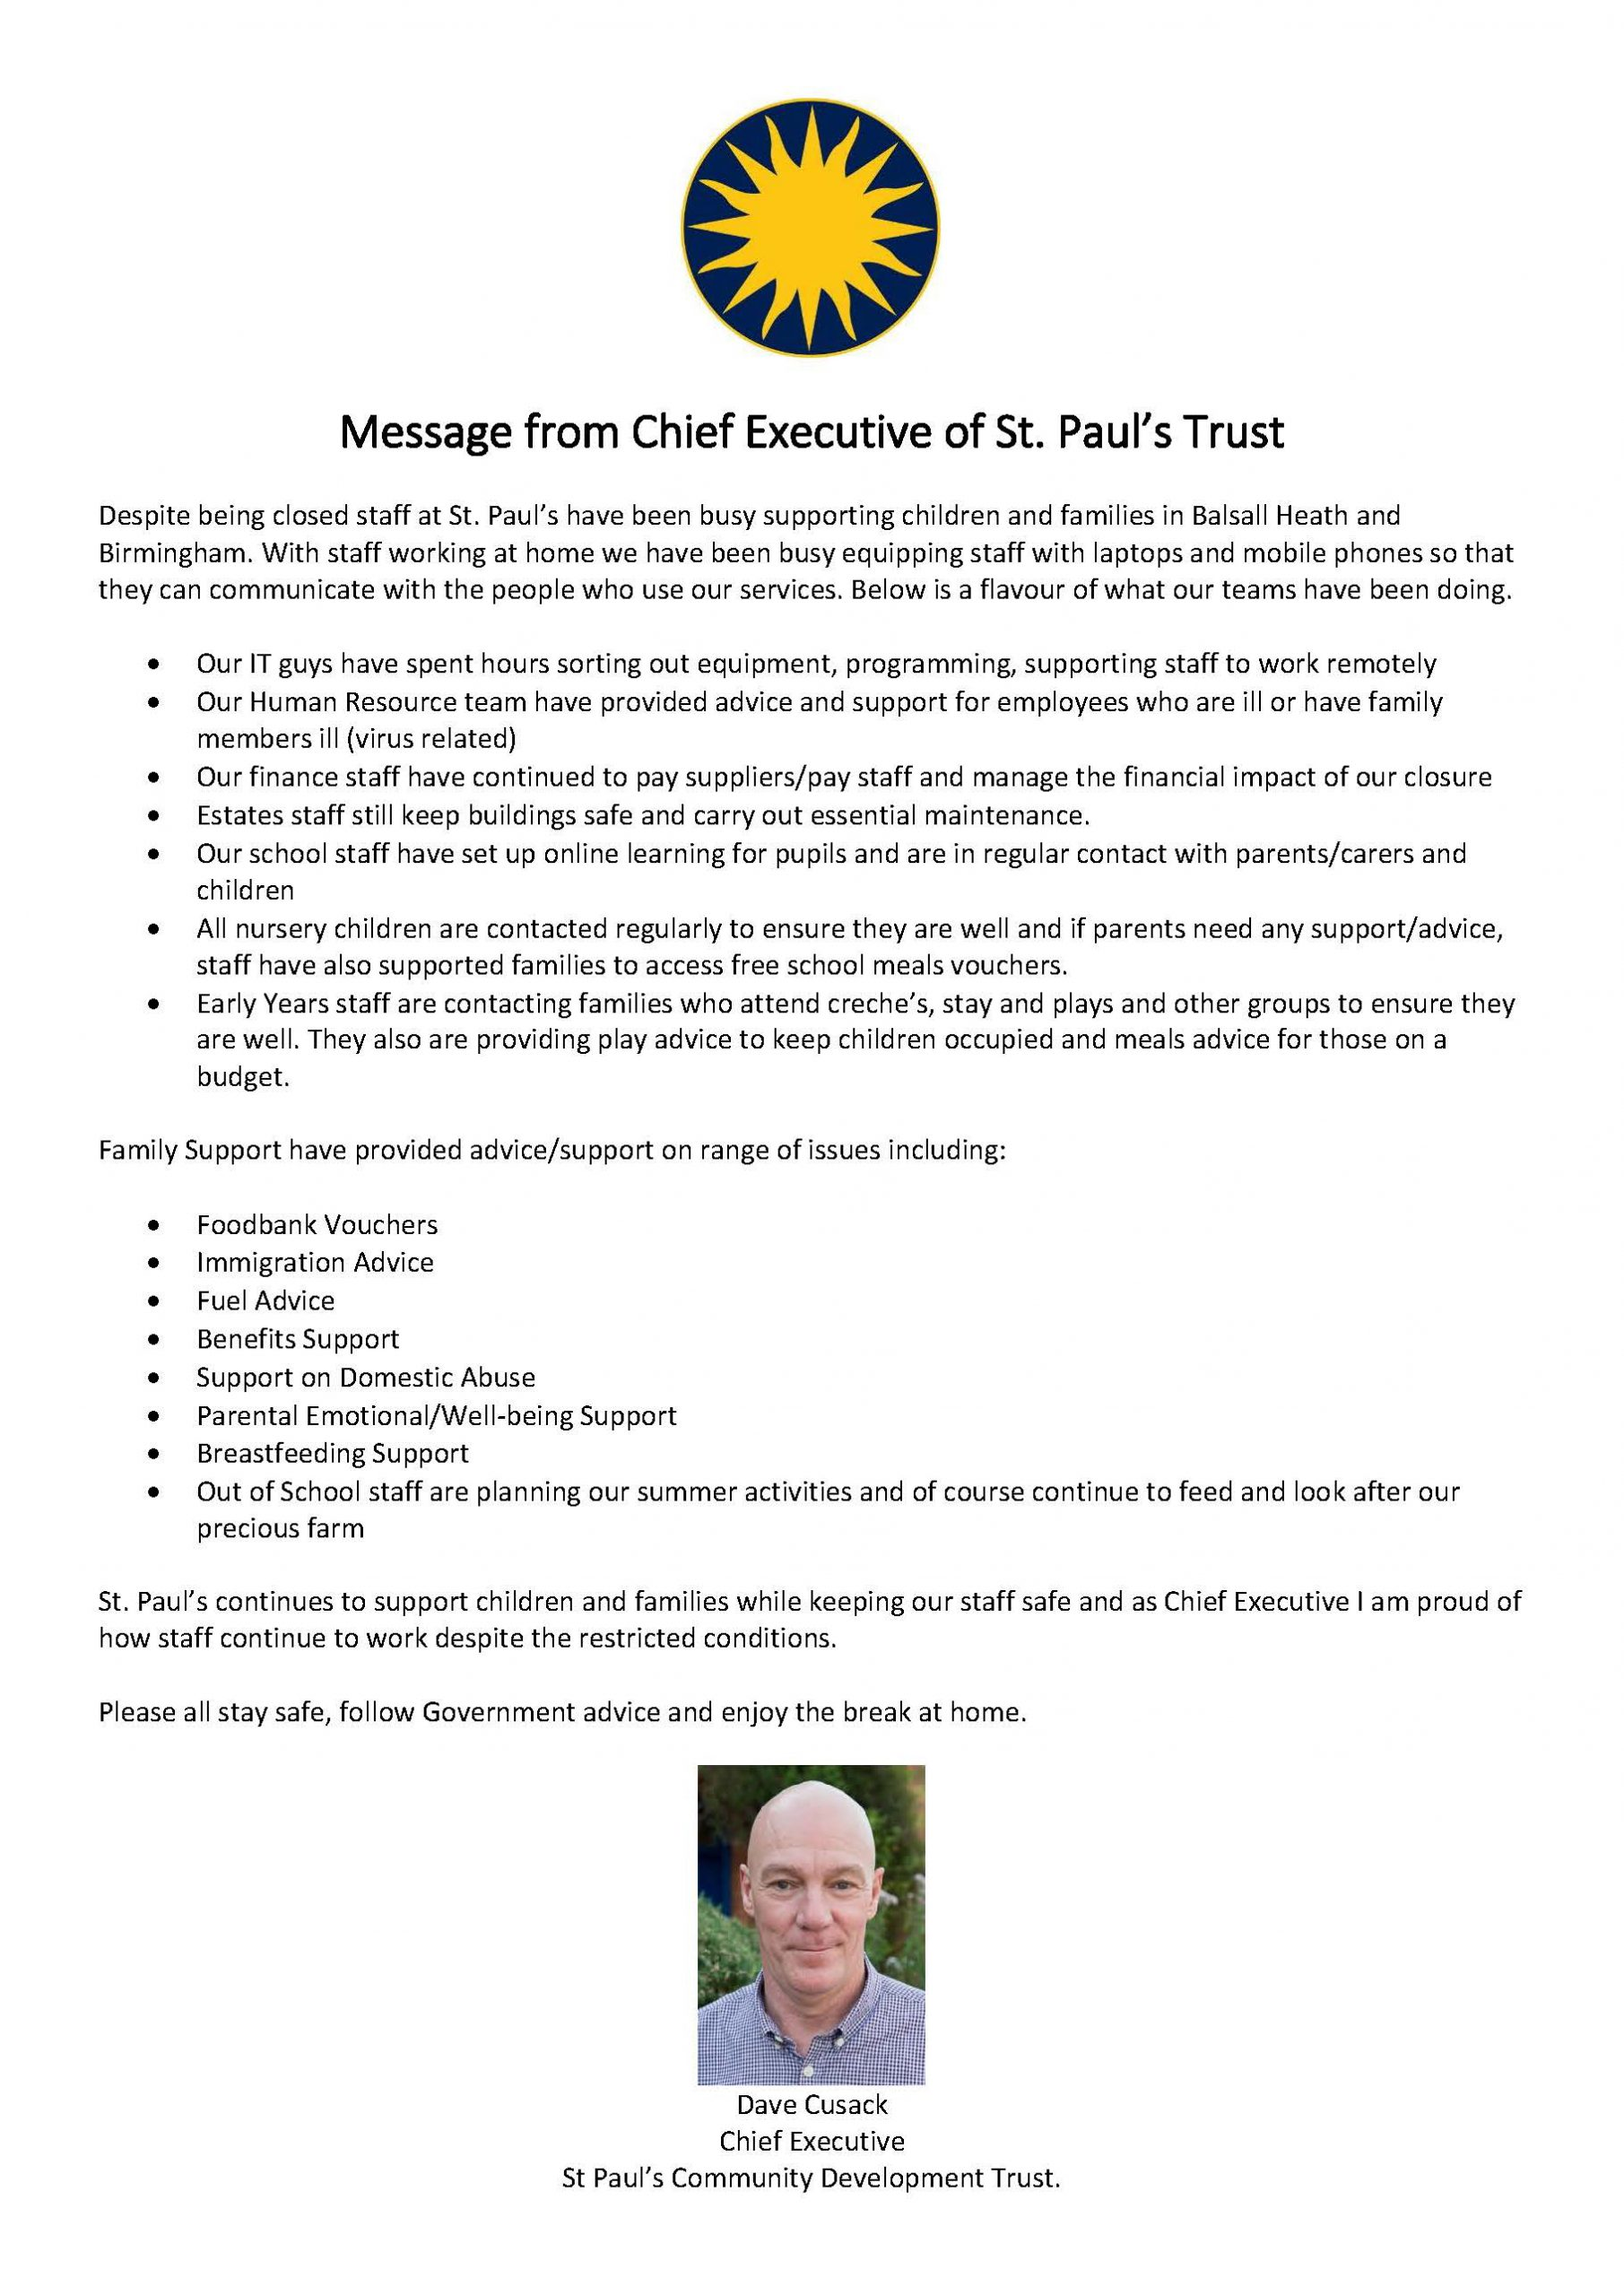 Message from CEO April 2020